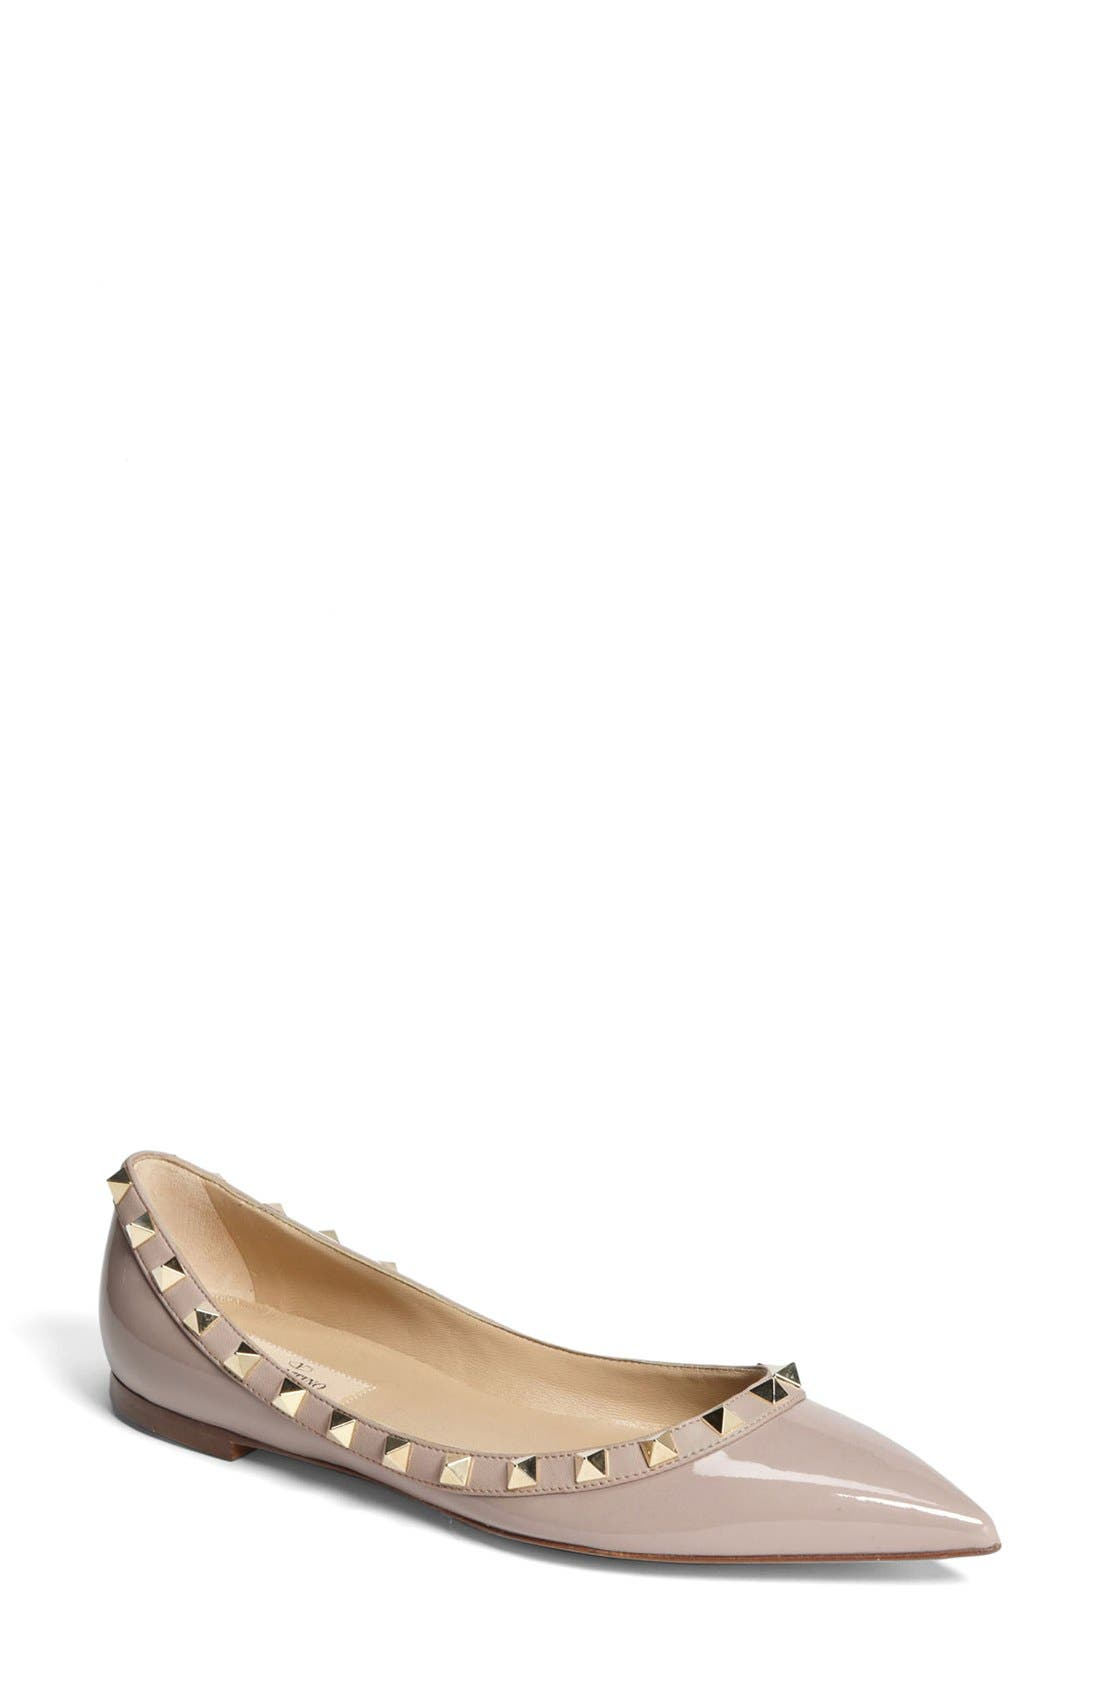 Alternate Image 1 Selected - Valentino Rockstud Ballerina Flat (Women)